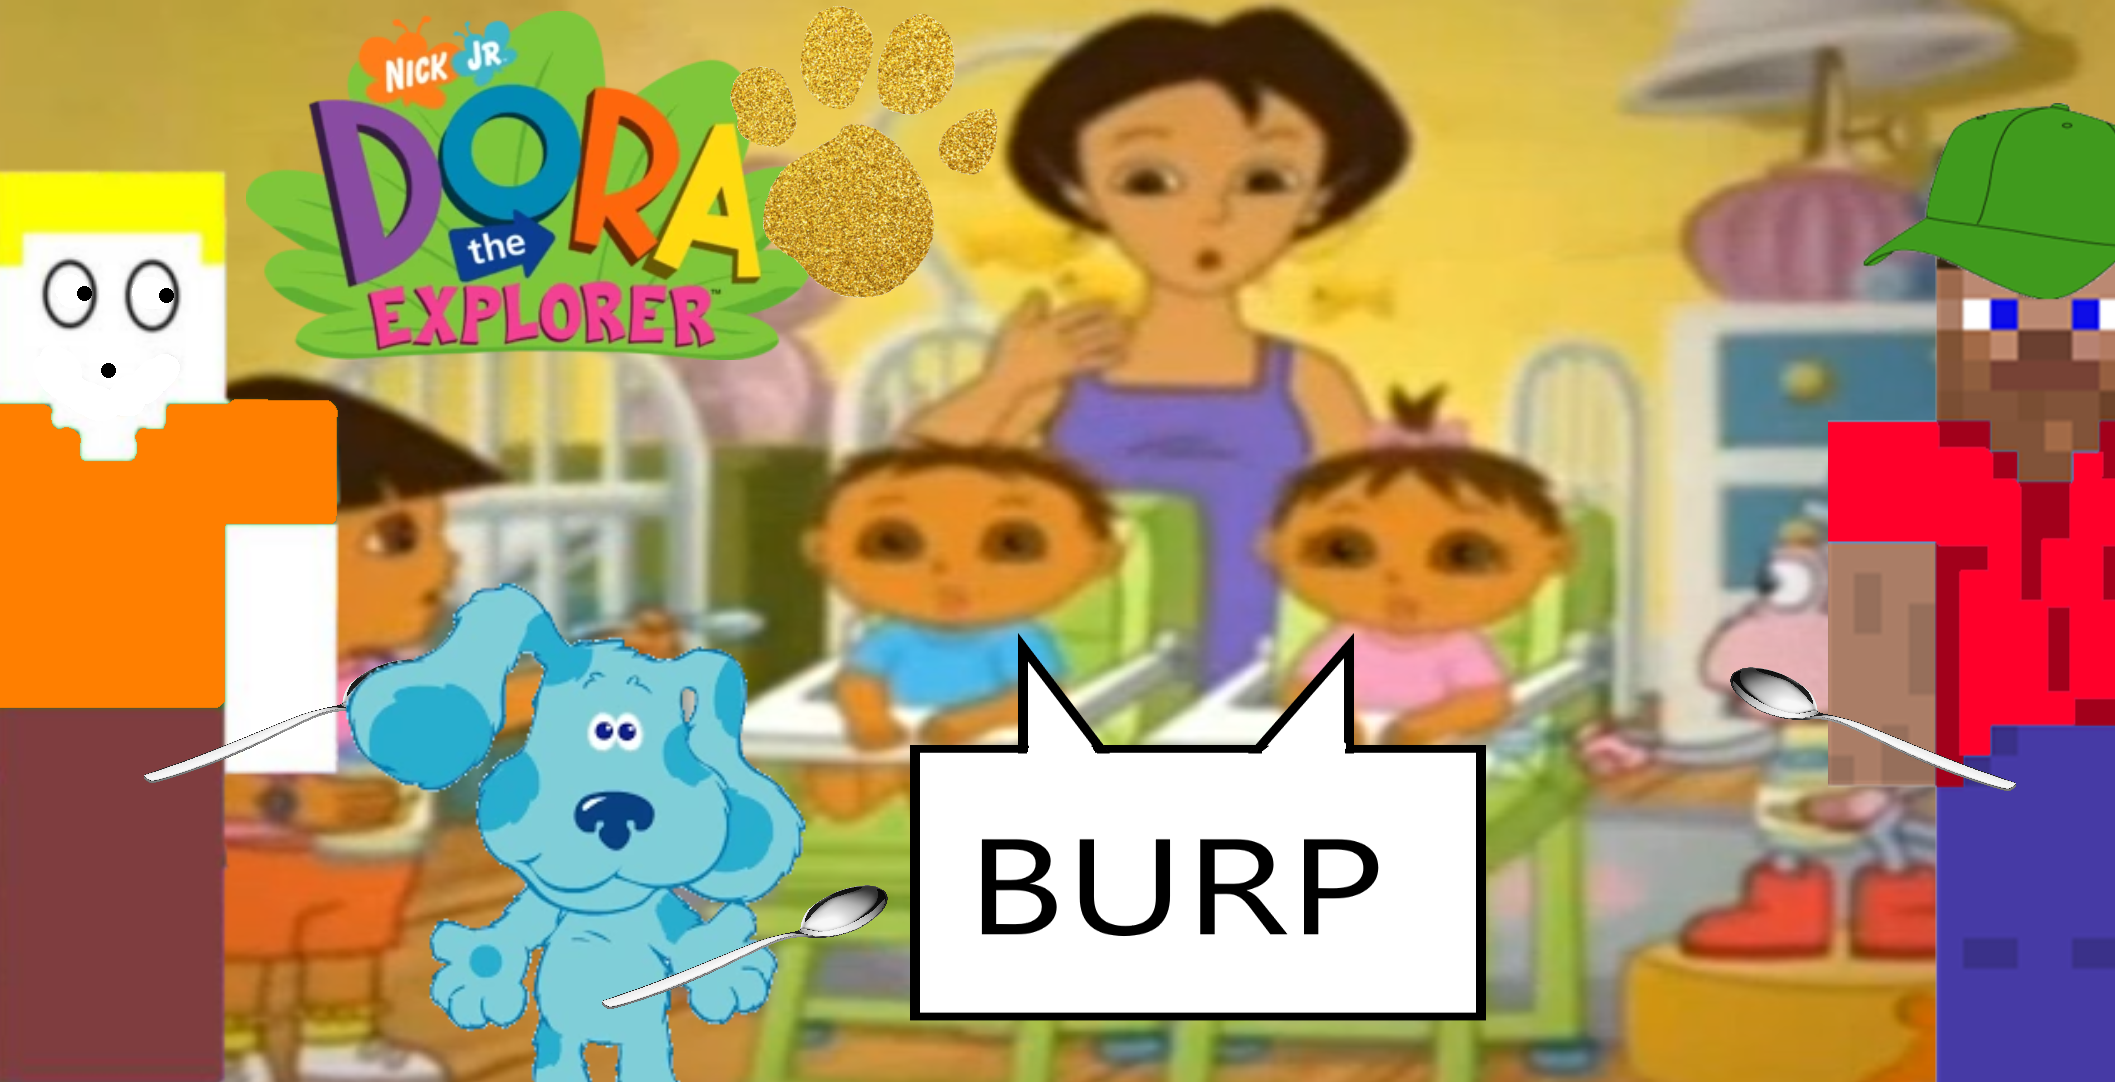 Pin on dora the explorer and gold clues